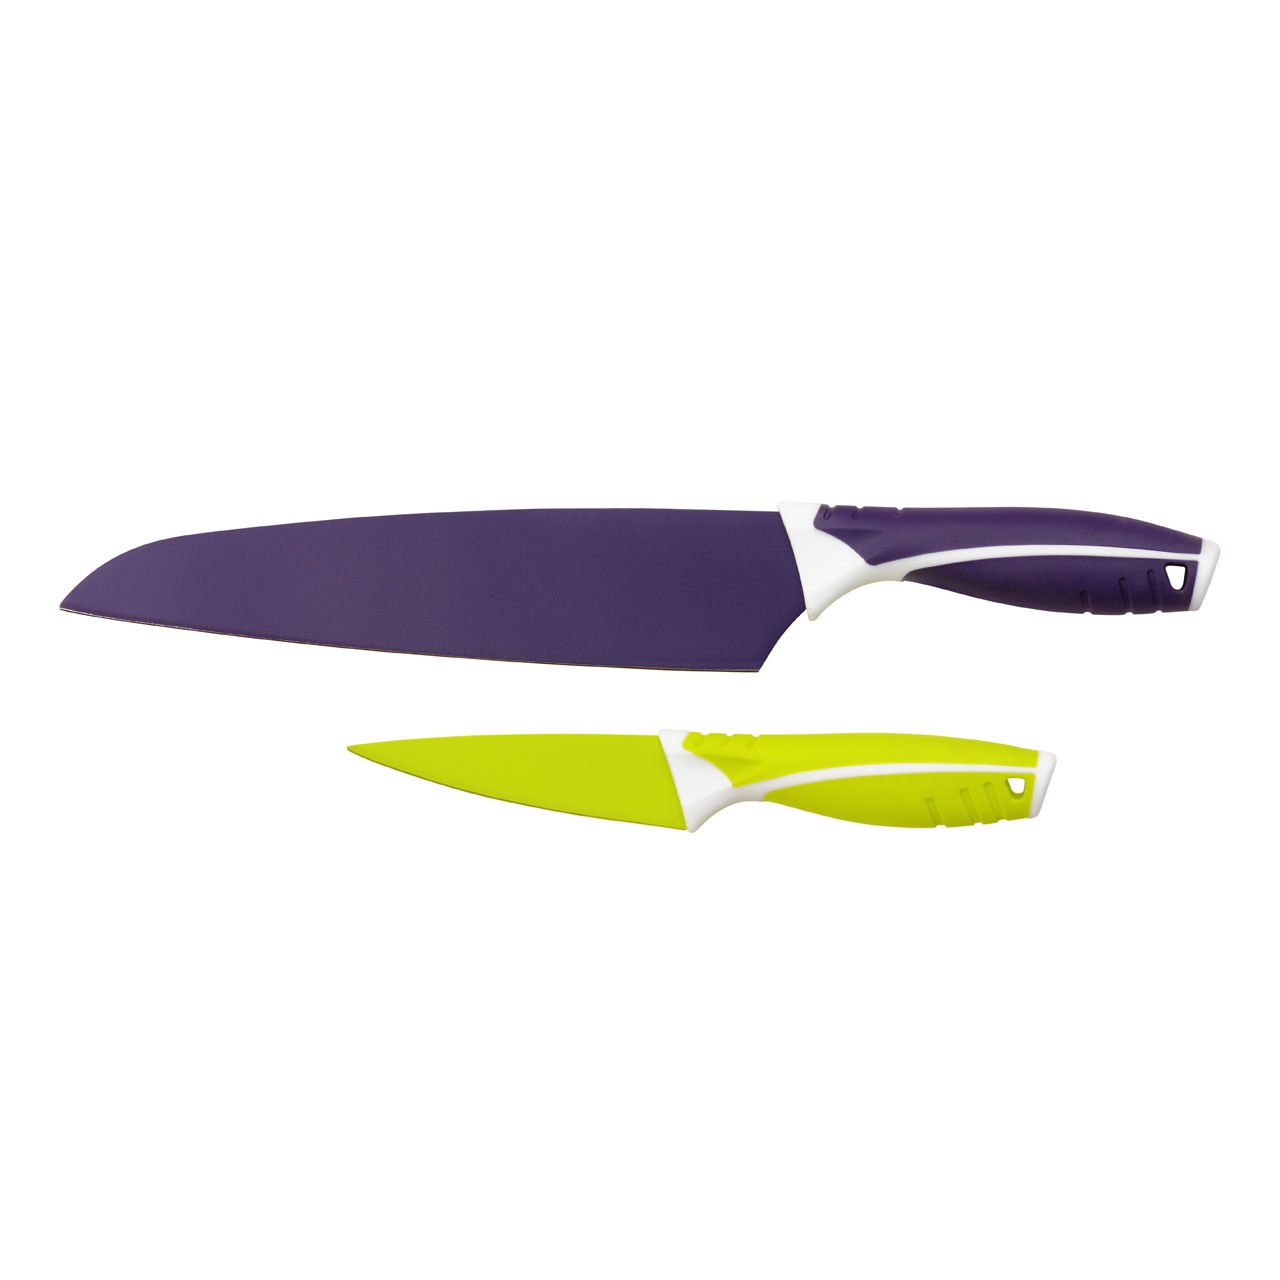 2pc Knife Set Purple Chef's Knife/Lime Green Paring Knife